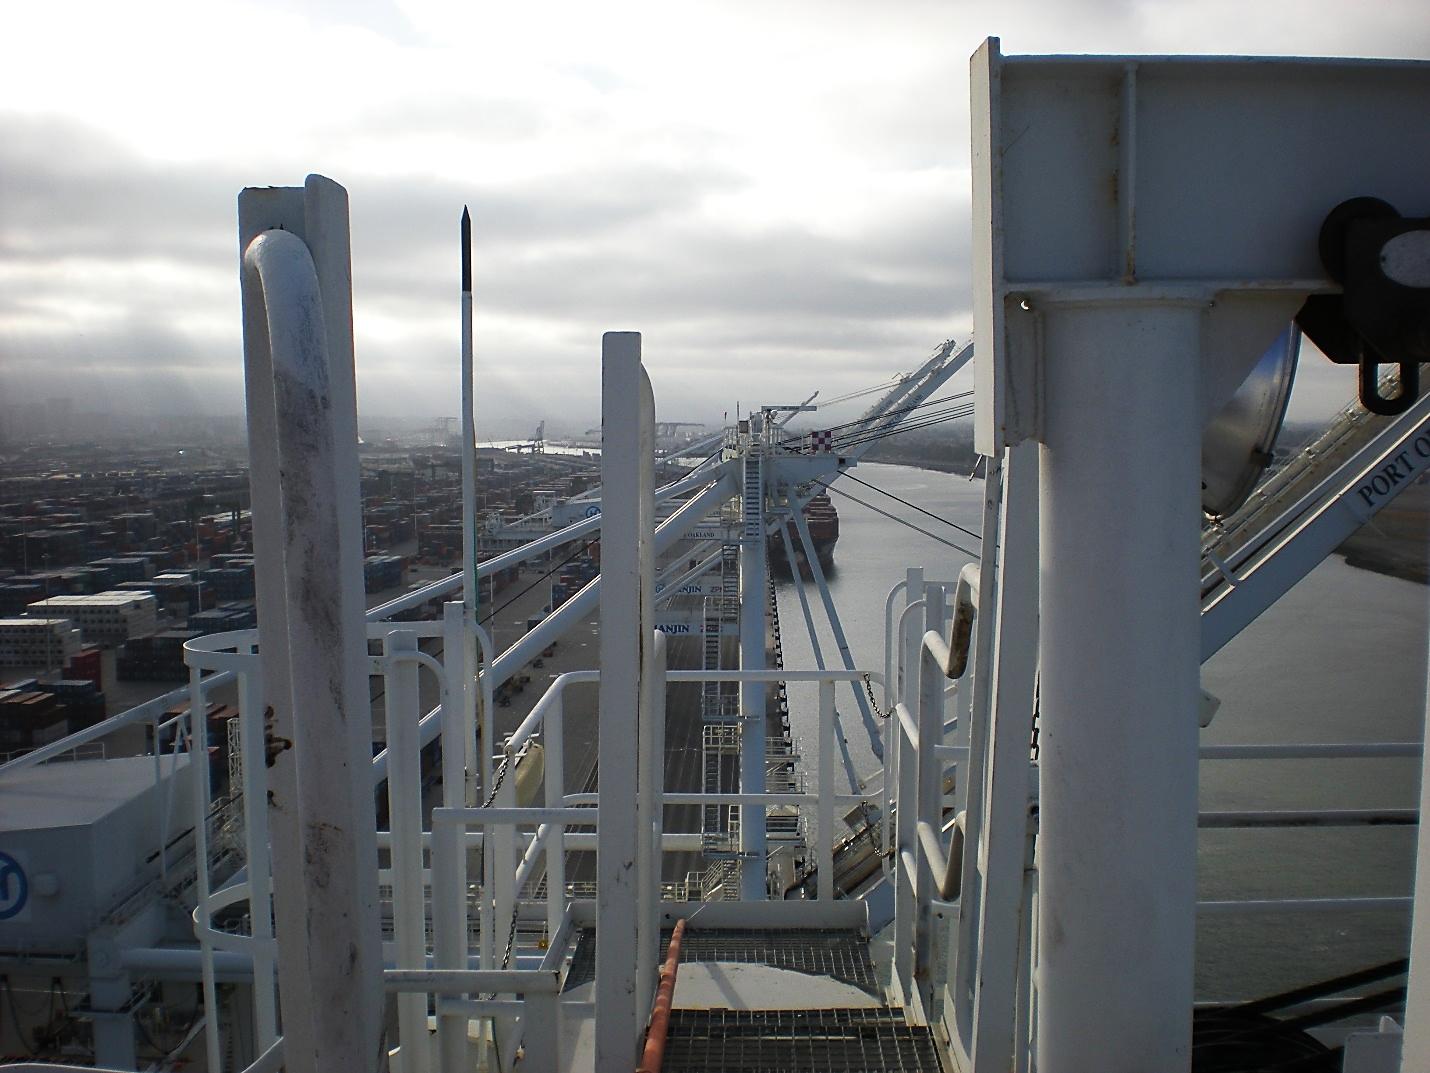 Port of Oakland Berth 55 and Inner Harbor Channel from Atop a Berth 55 Container Crane